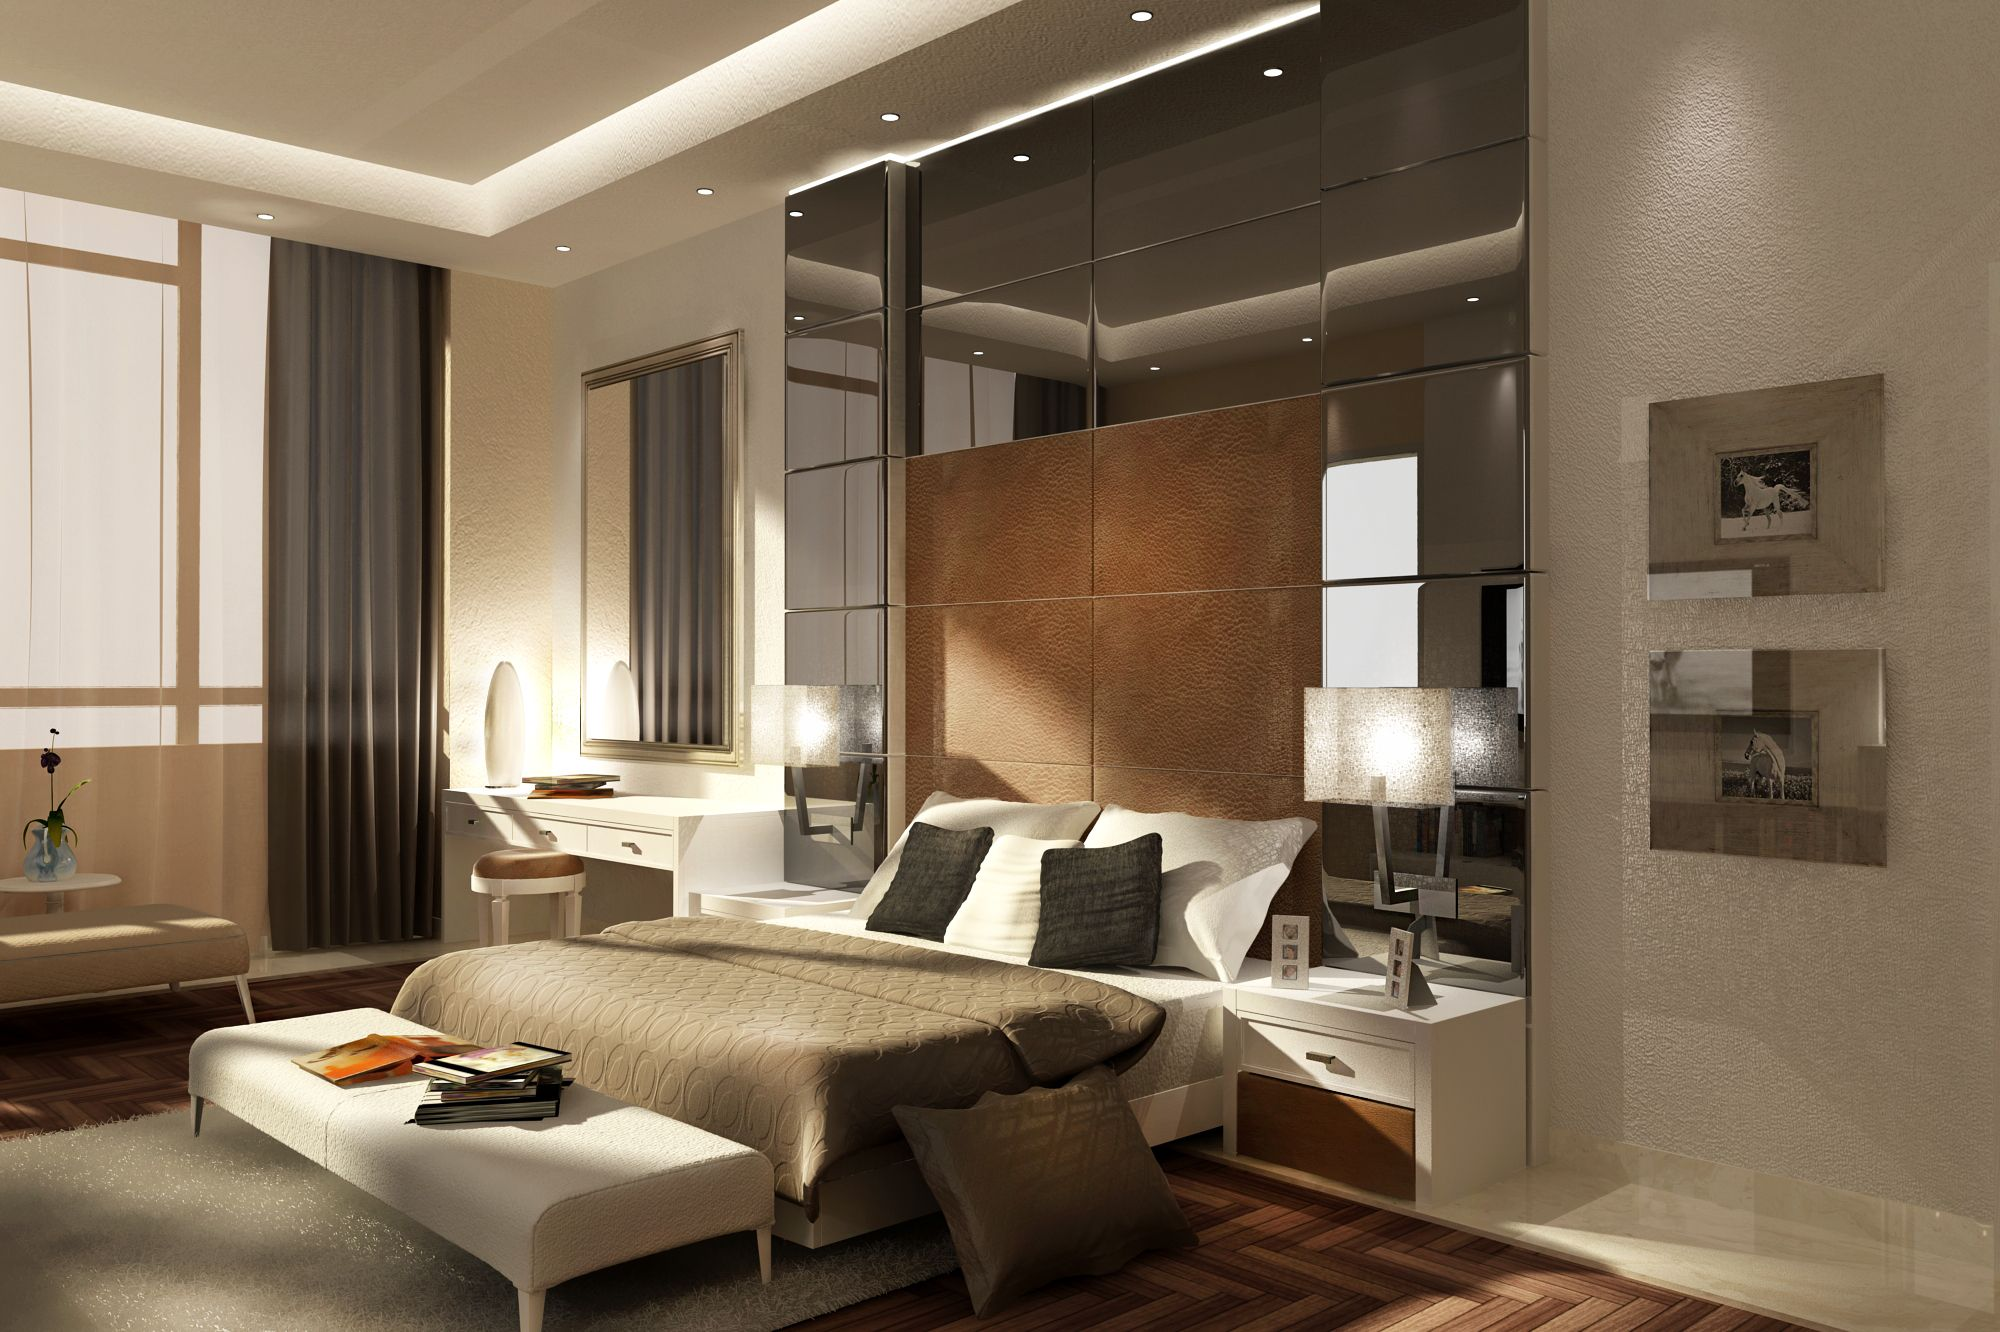 3d Render, 3d Max, Interior Design, Bedroom Design, Modern Master Bedroom